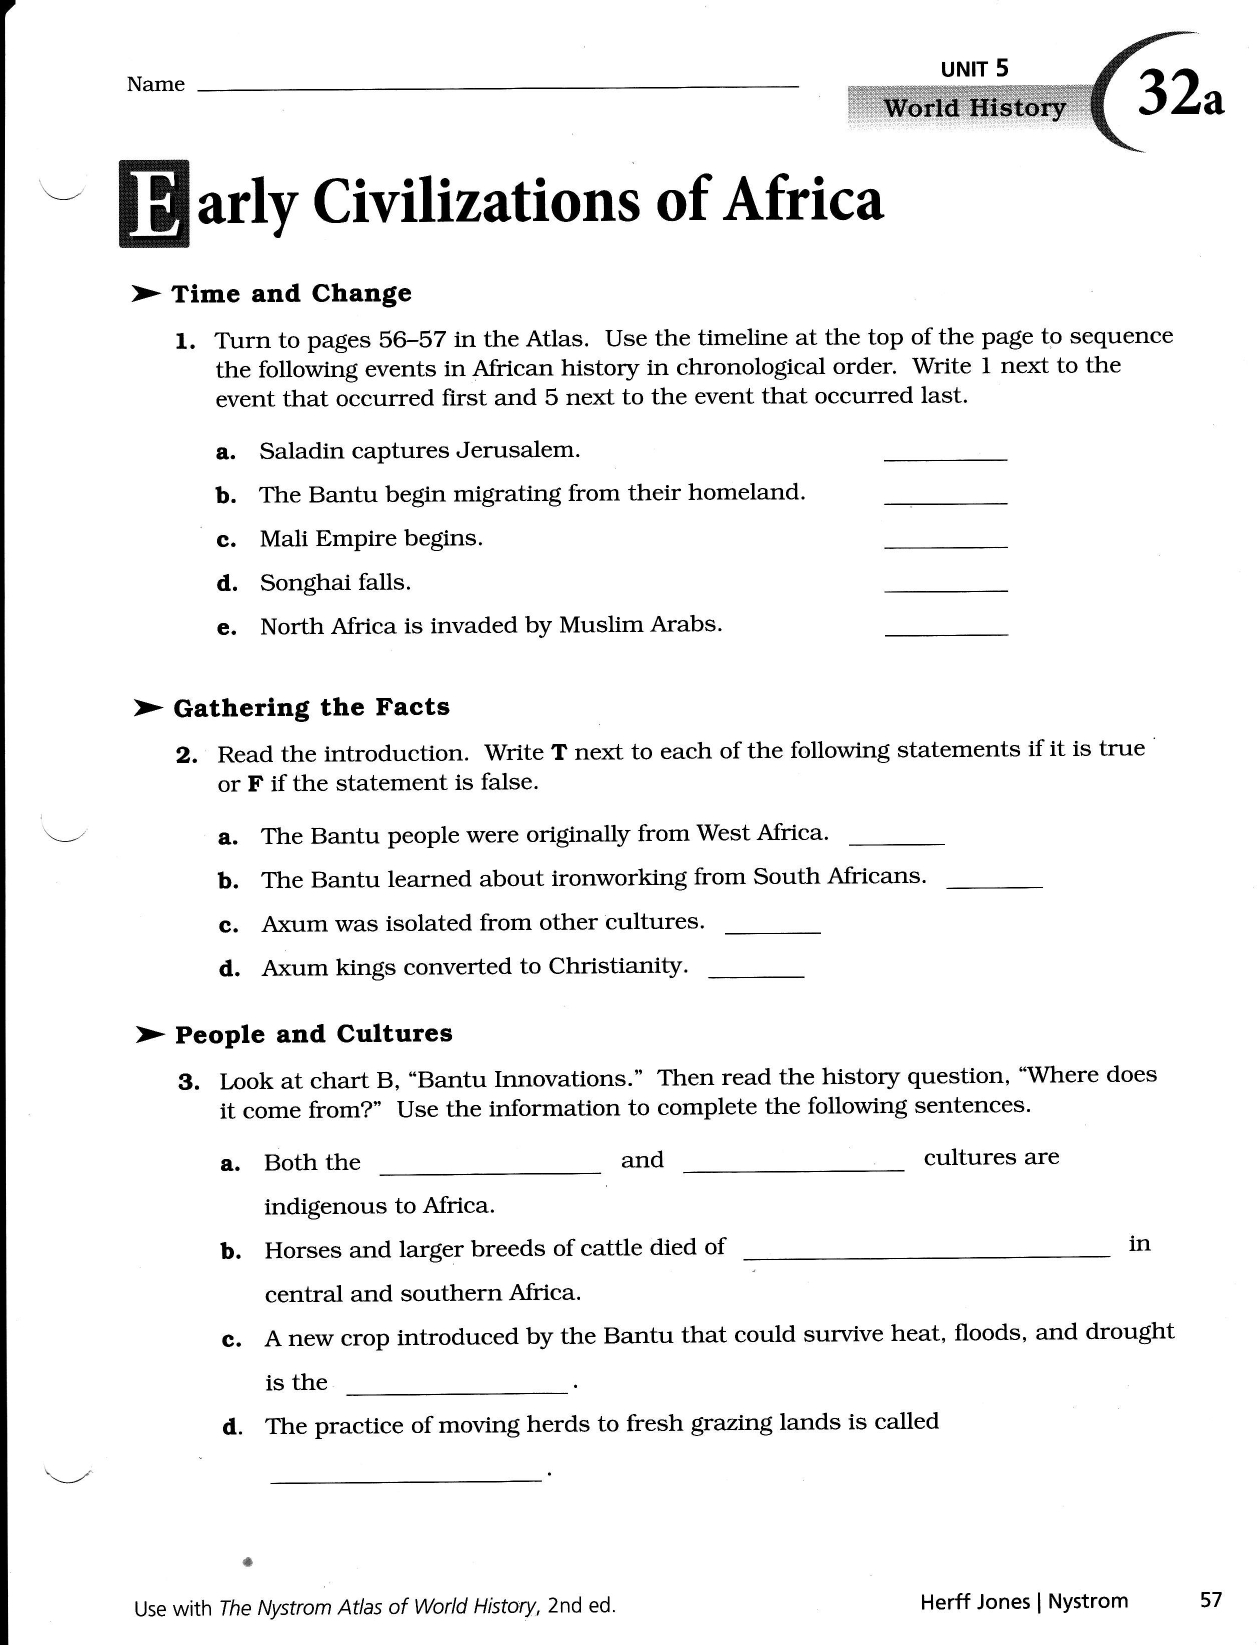 Civilizations Of Africa With Early African Civilizations Worksheet Answers